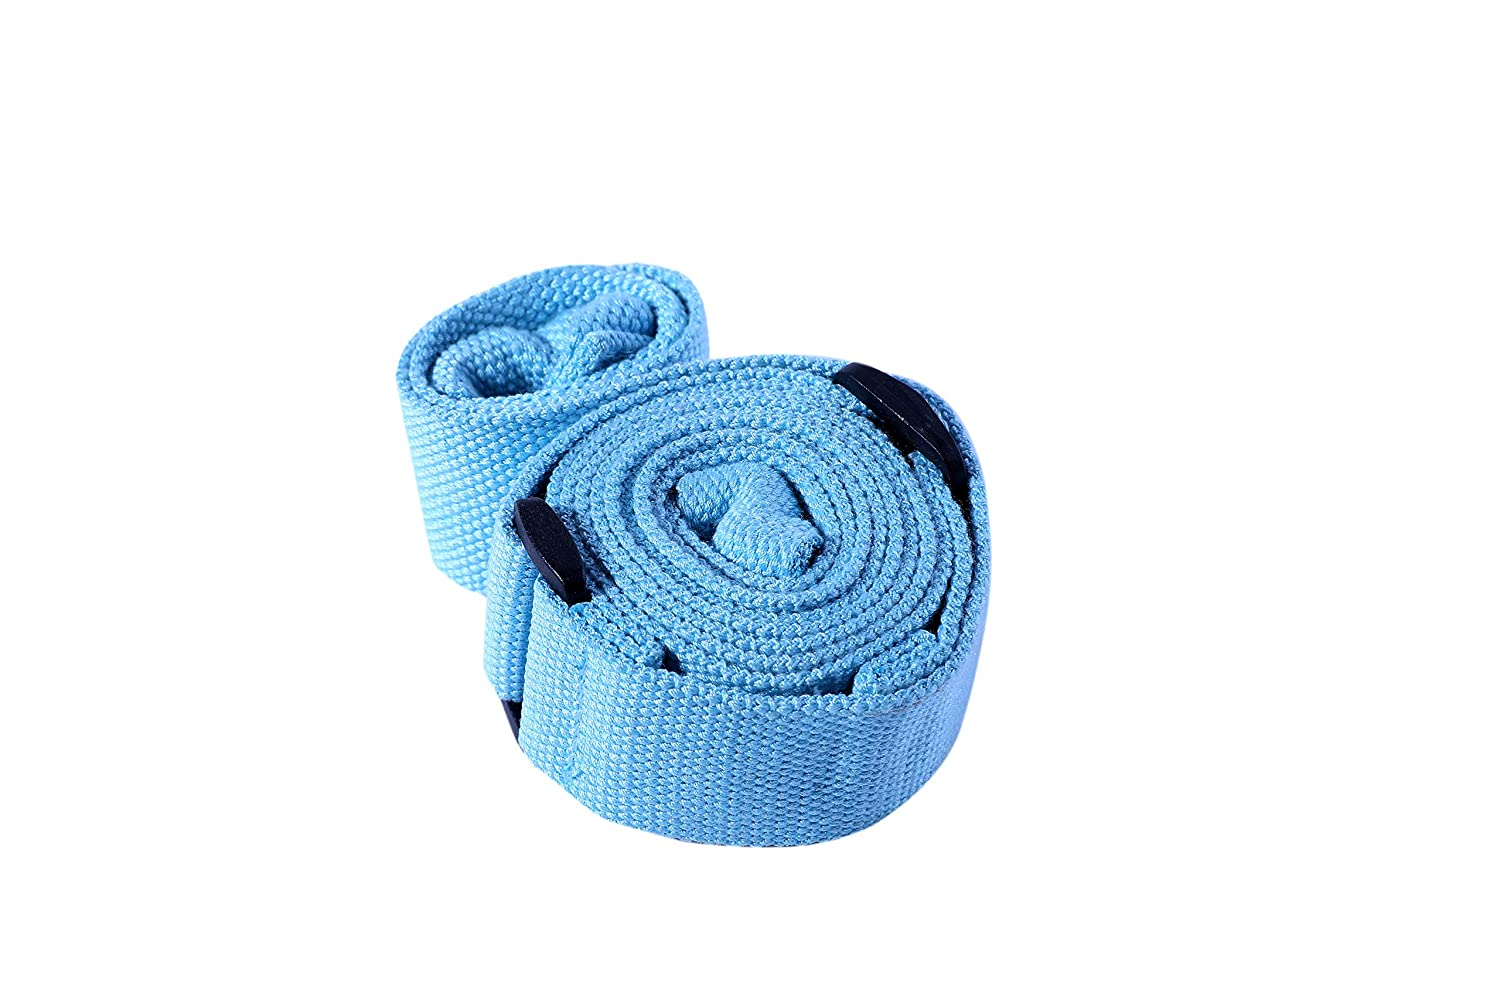 Odor/&Tear Resistant WEHE Adjustable Carrying Exercise Strap Sling for Yoga Mat Shoulder Friendly Bag and Fitness Stretching Design Extra Long 86 Durable Cotton Pilates Straps